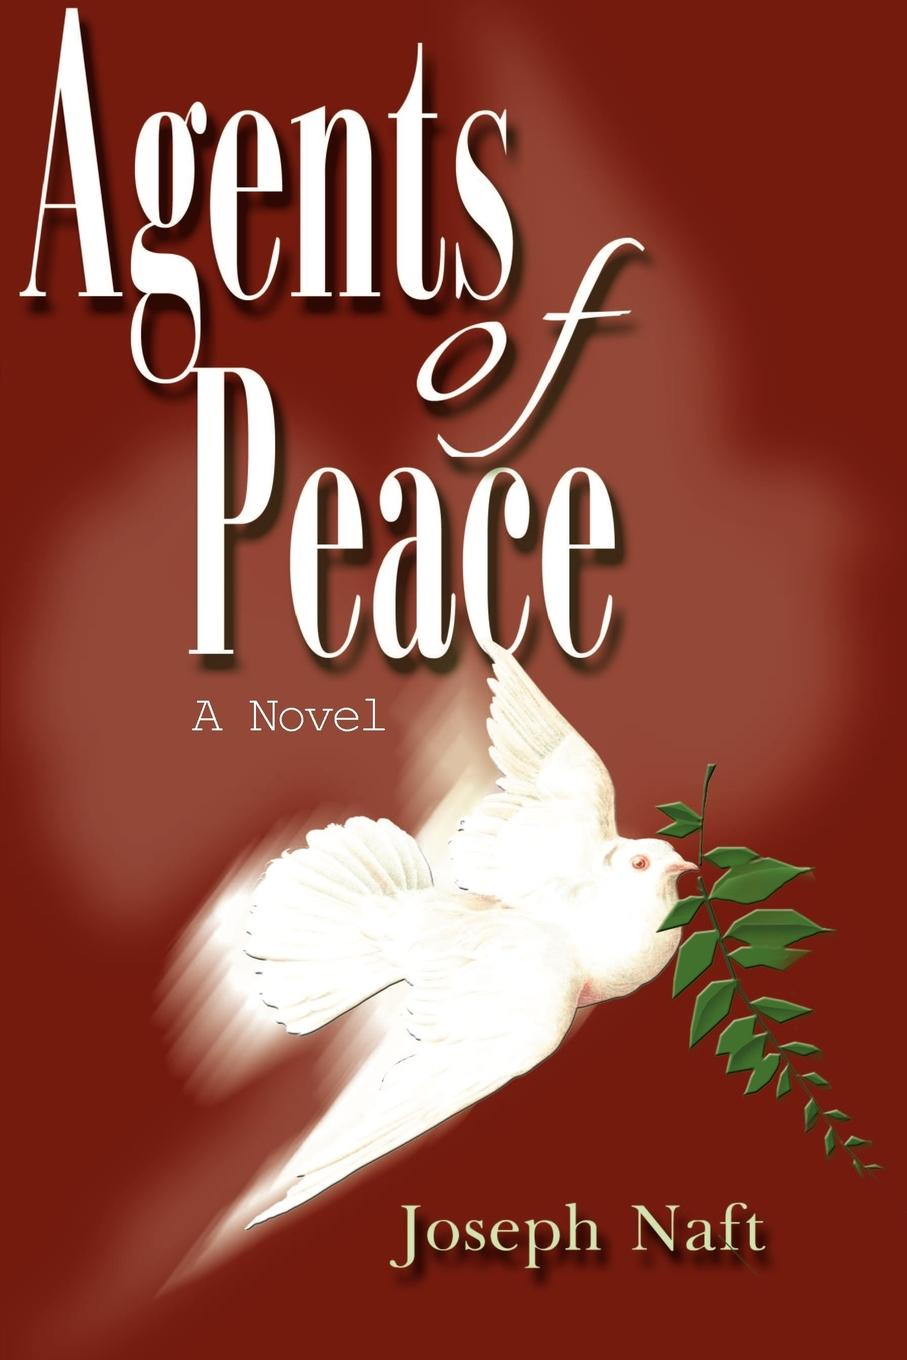 Agents of Peace. Joseph Naft